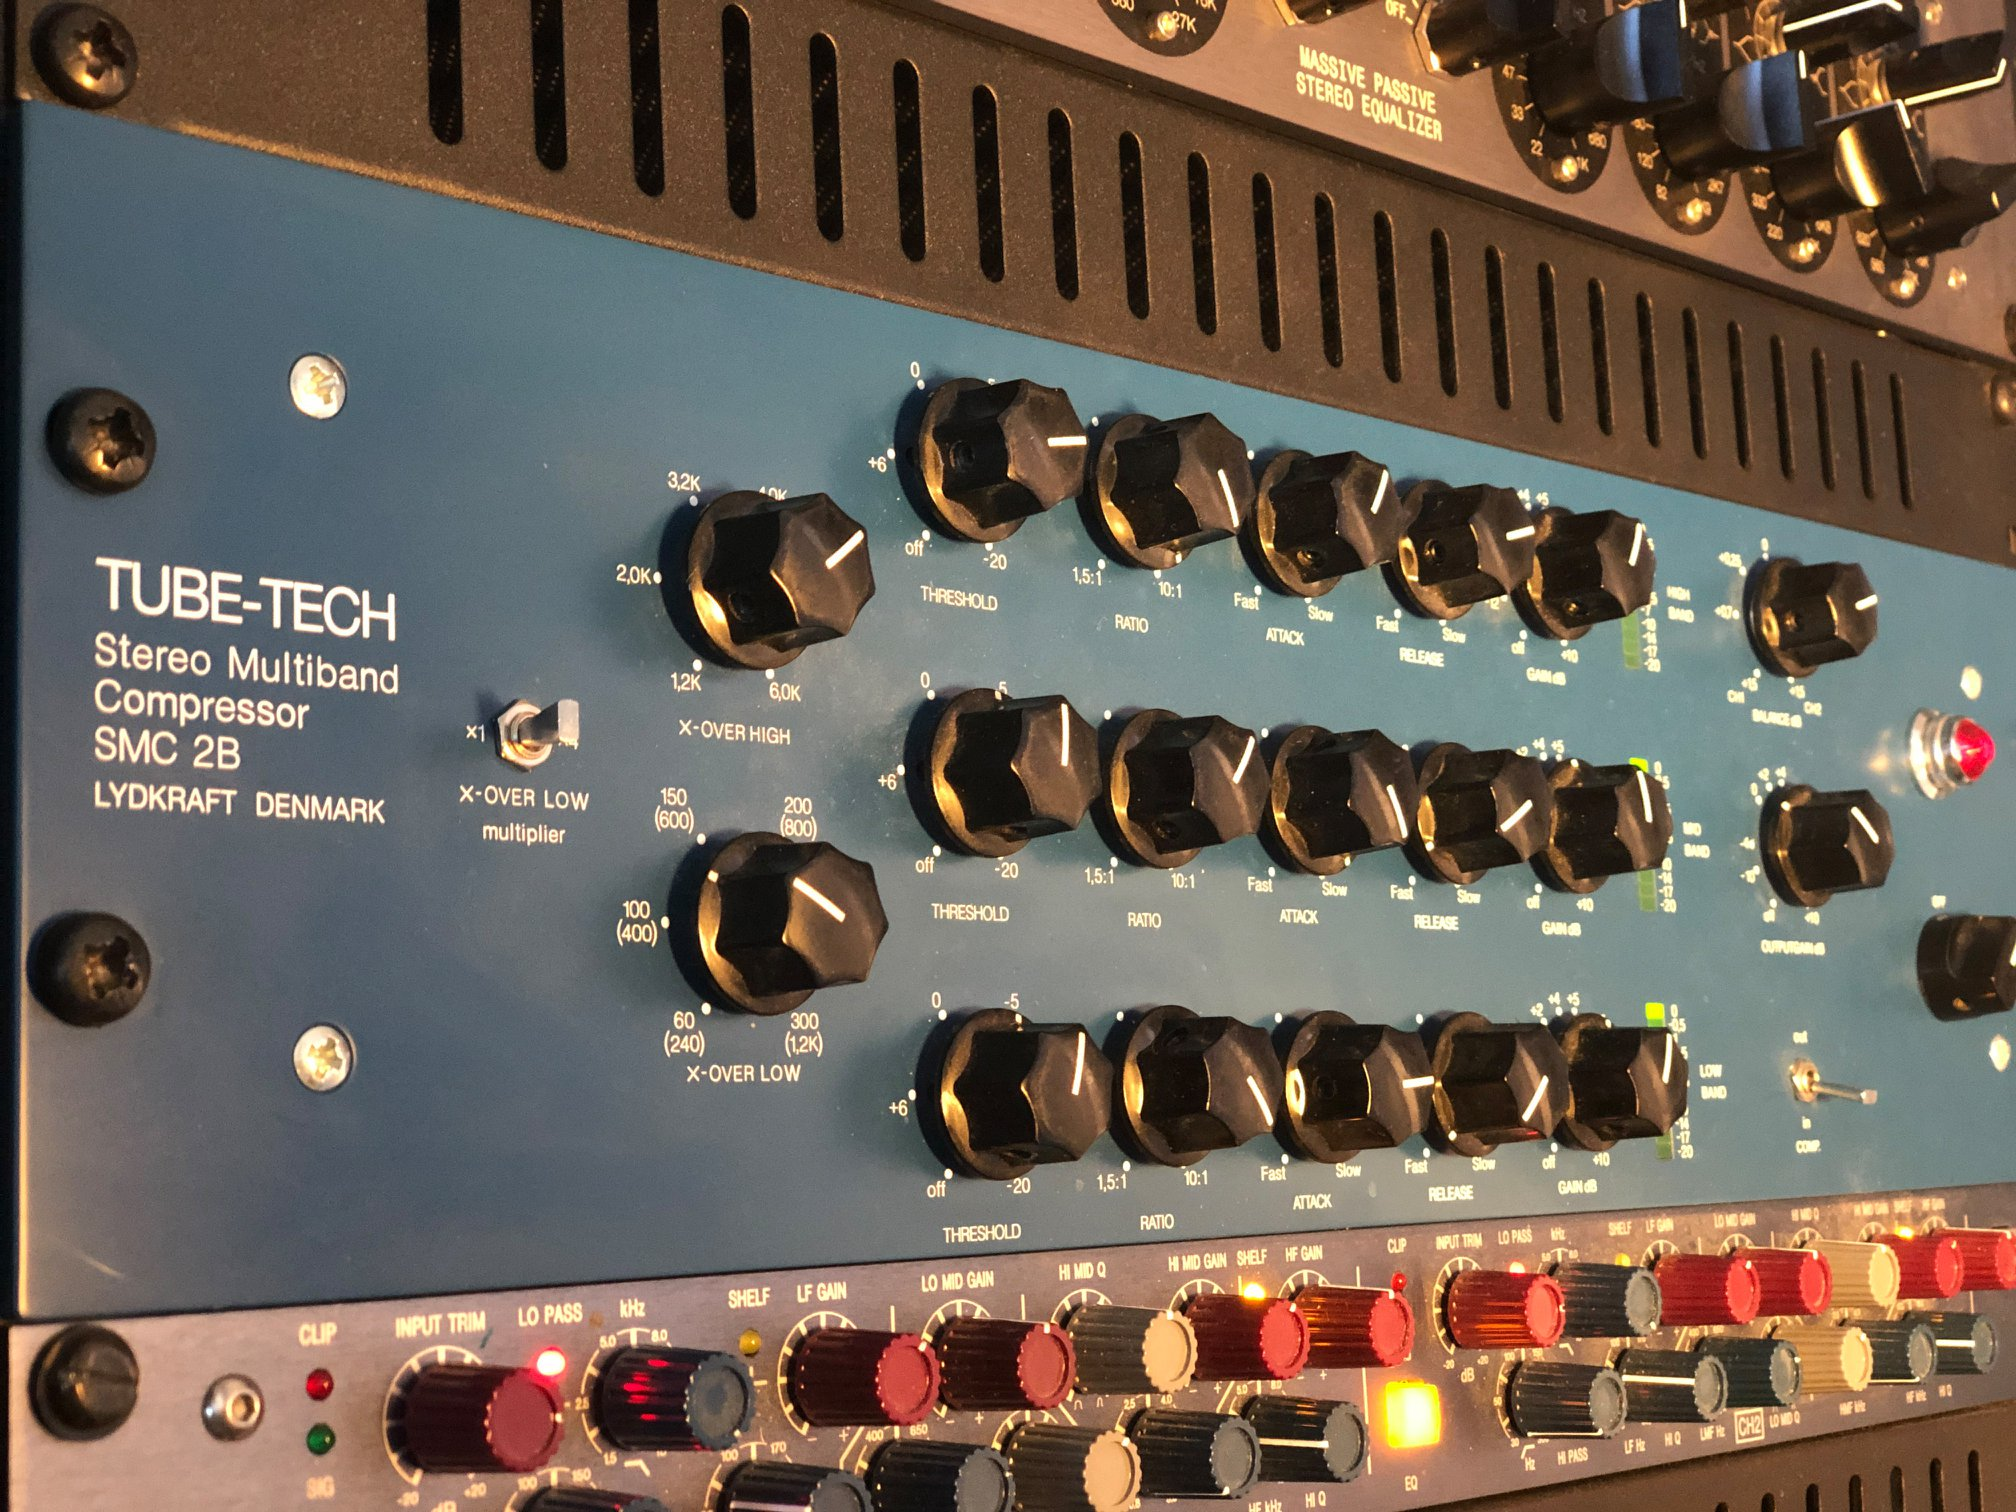 Tube-Tech SMC-2B Multi-Band Compressor: Makes the difference in compressing... natural compressing sound and great sound in so many top productions. Foto: privat